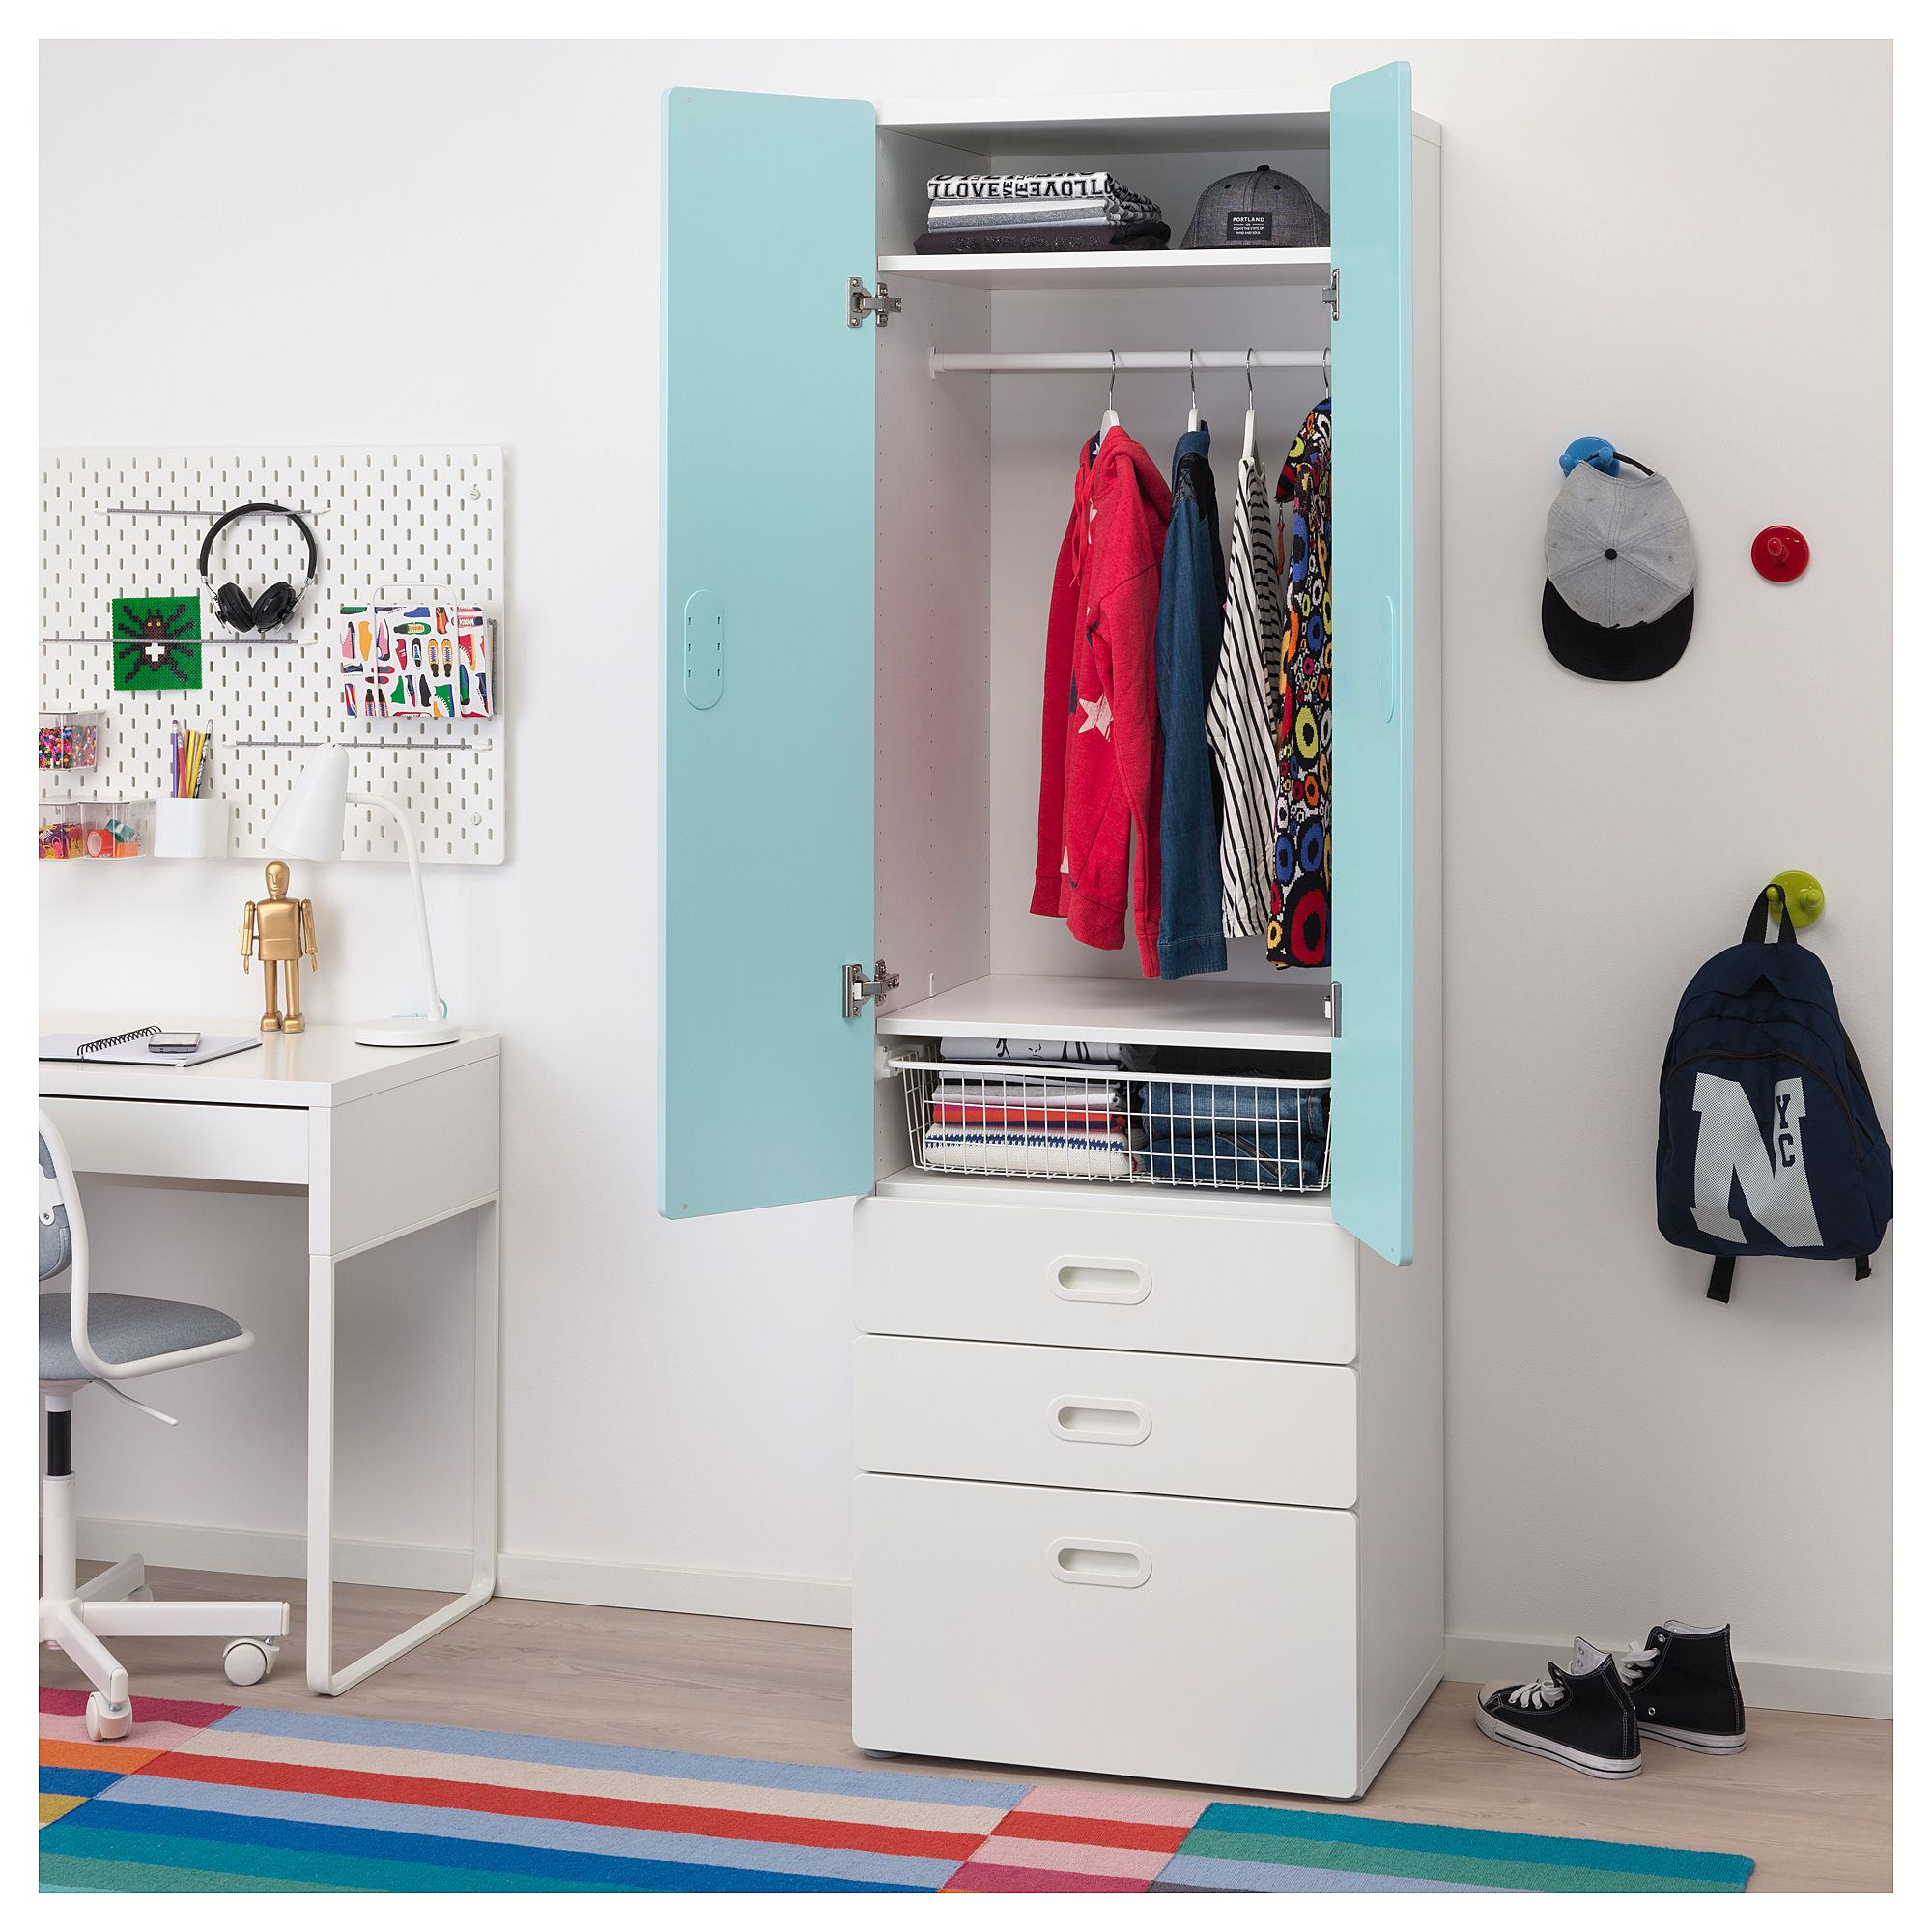 Ikea Stuva Fritids Wardrobe White Light Blue Kleiderschrank